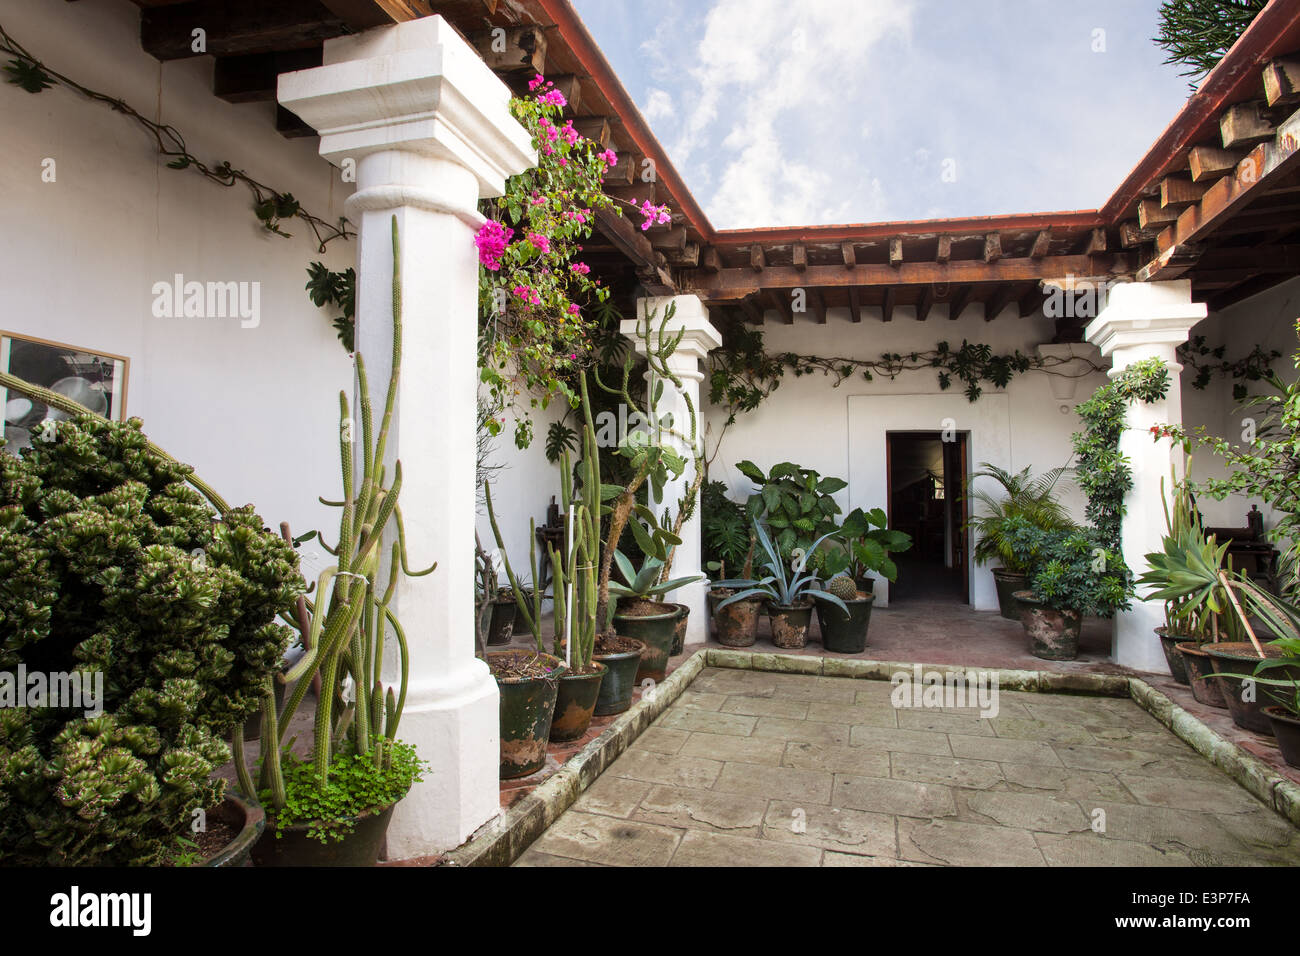 Patio of a 17th century home in the historic center of Oaxaca, Mexico. - Stock Image